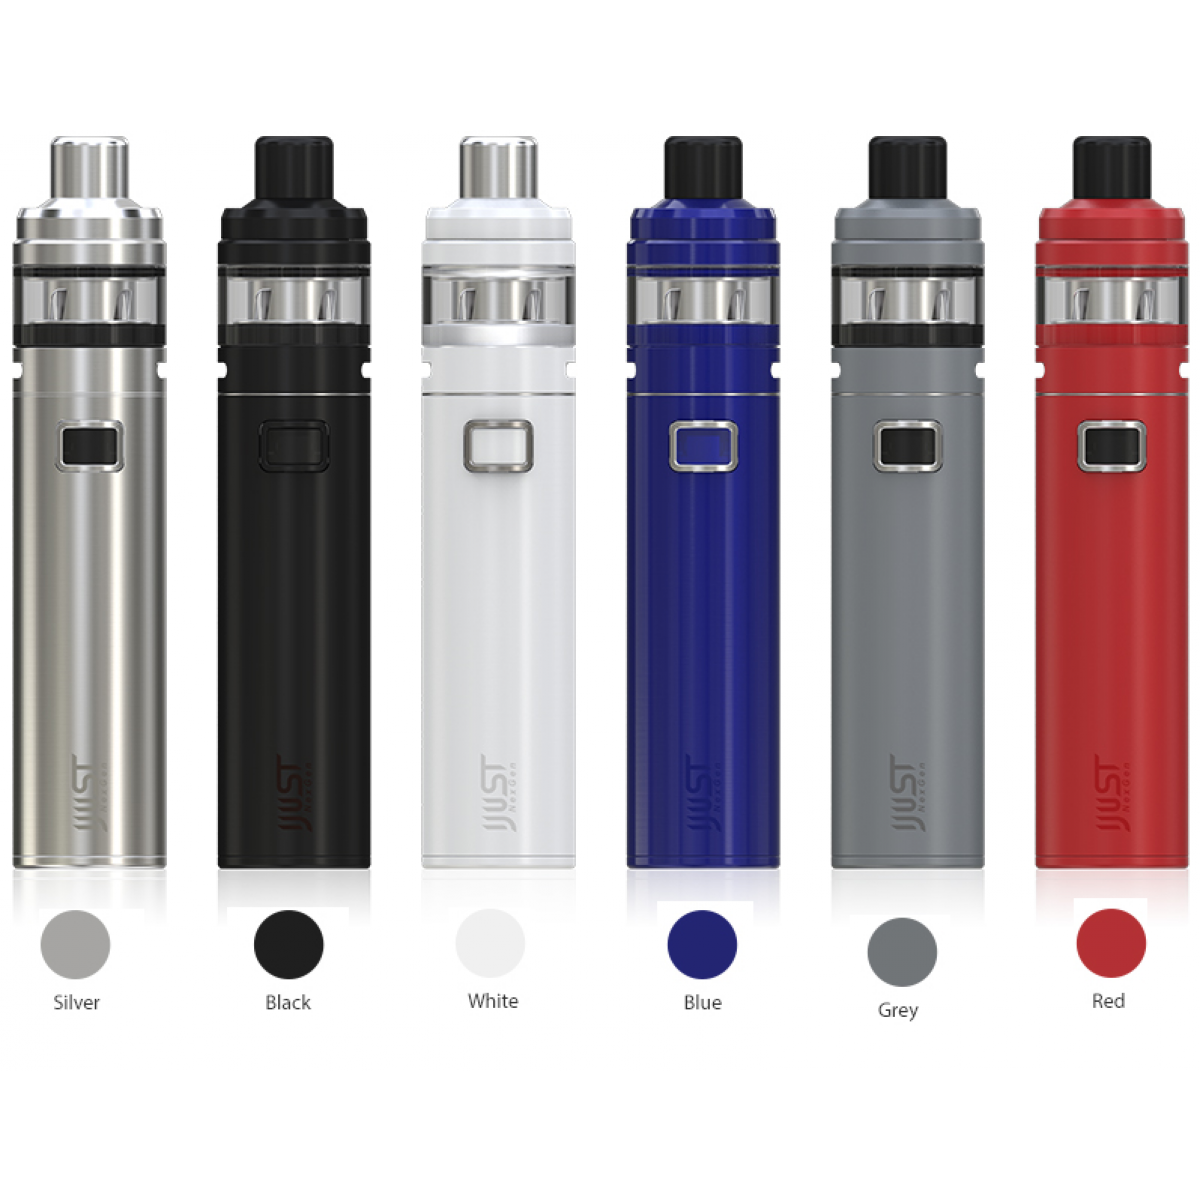 Девайс Eleaf iJust NexGen Full Kit - 3000mAh - Электронная сигарета. Оригинал